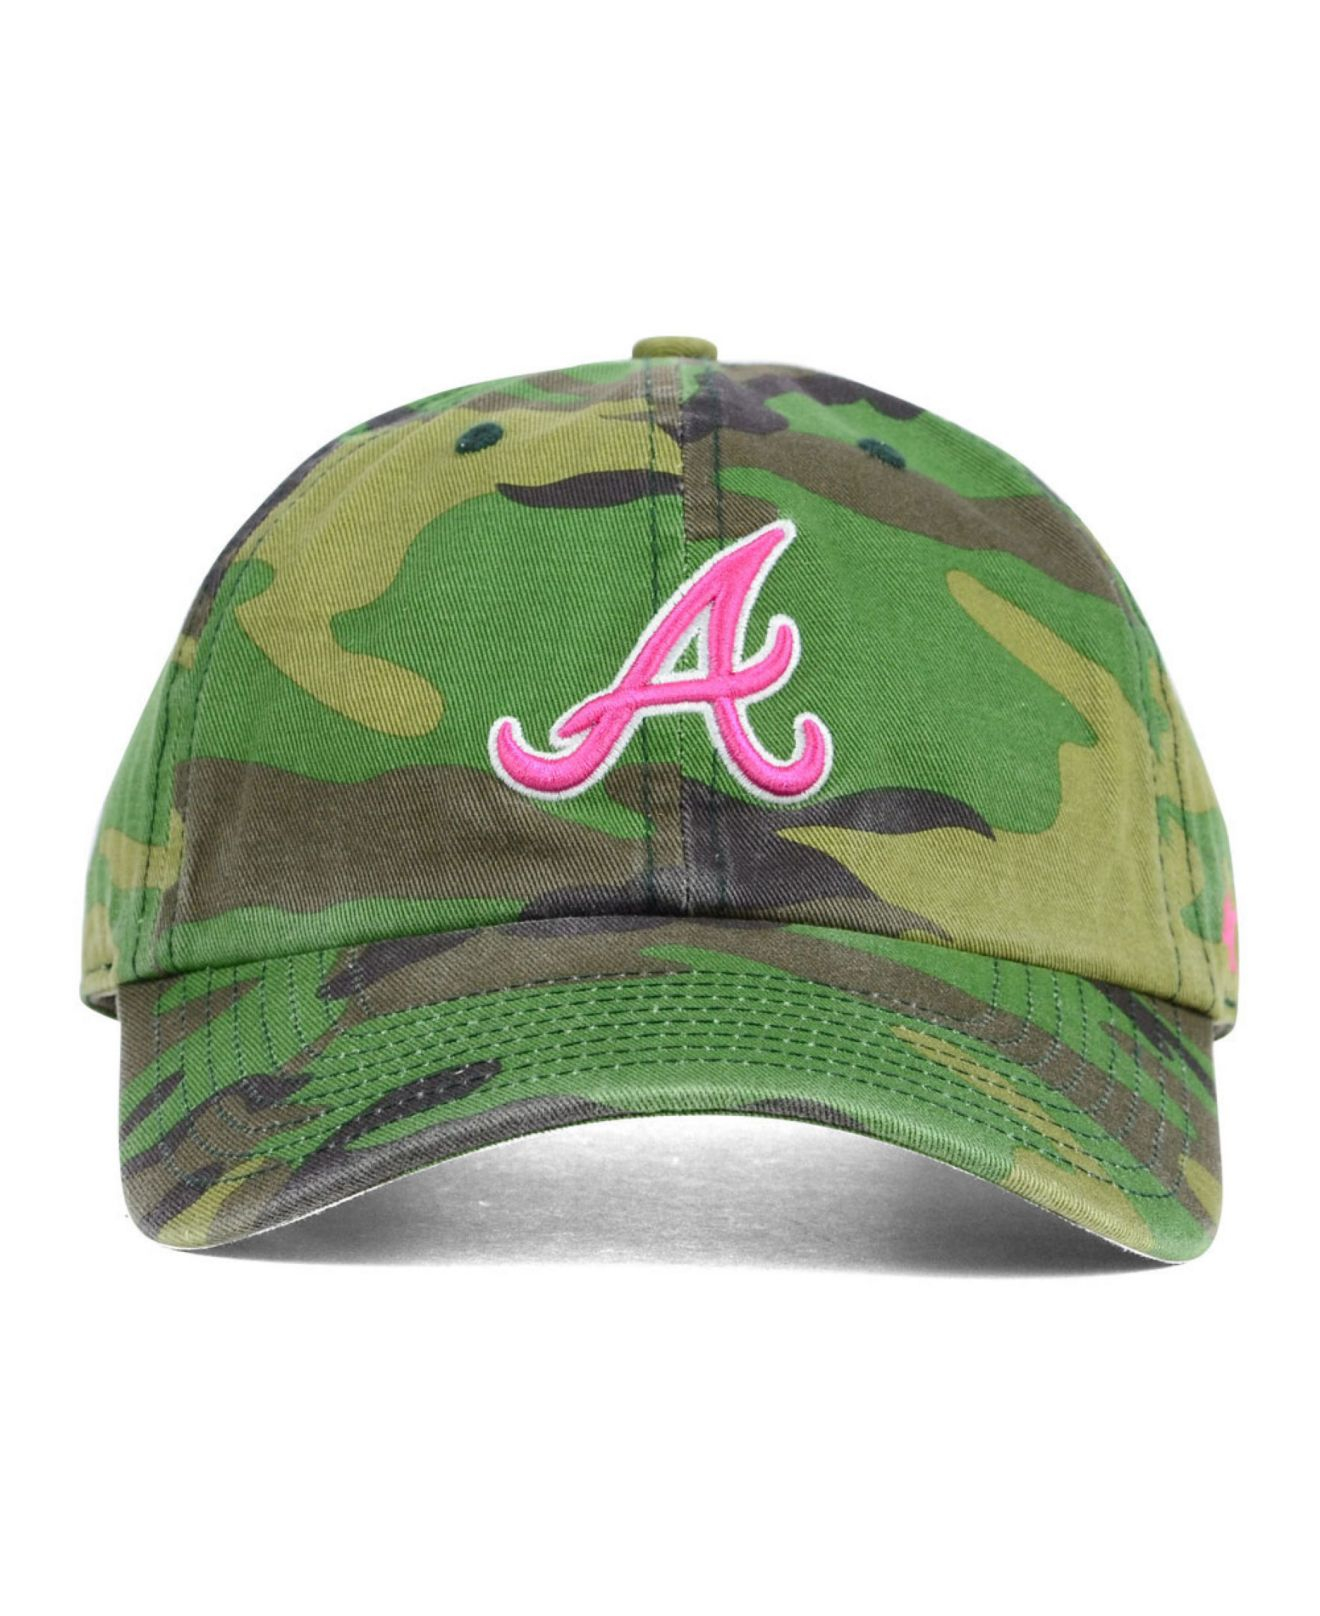 finest selection 2da41 4d6f7 ... hat 1863511169 7625d 69730 sale quite nice 67a2d 8cd29 lyst 47 brand  womens atlanta braves clean up cap in green ...